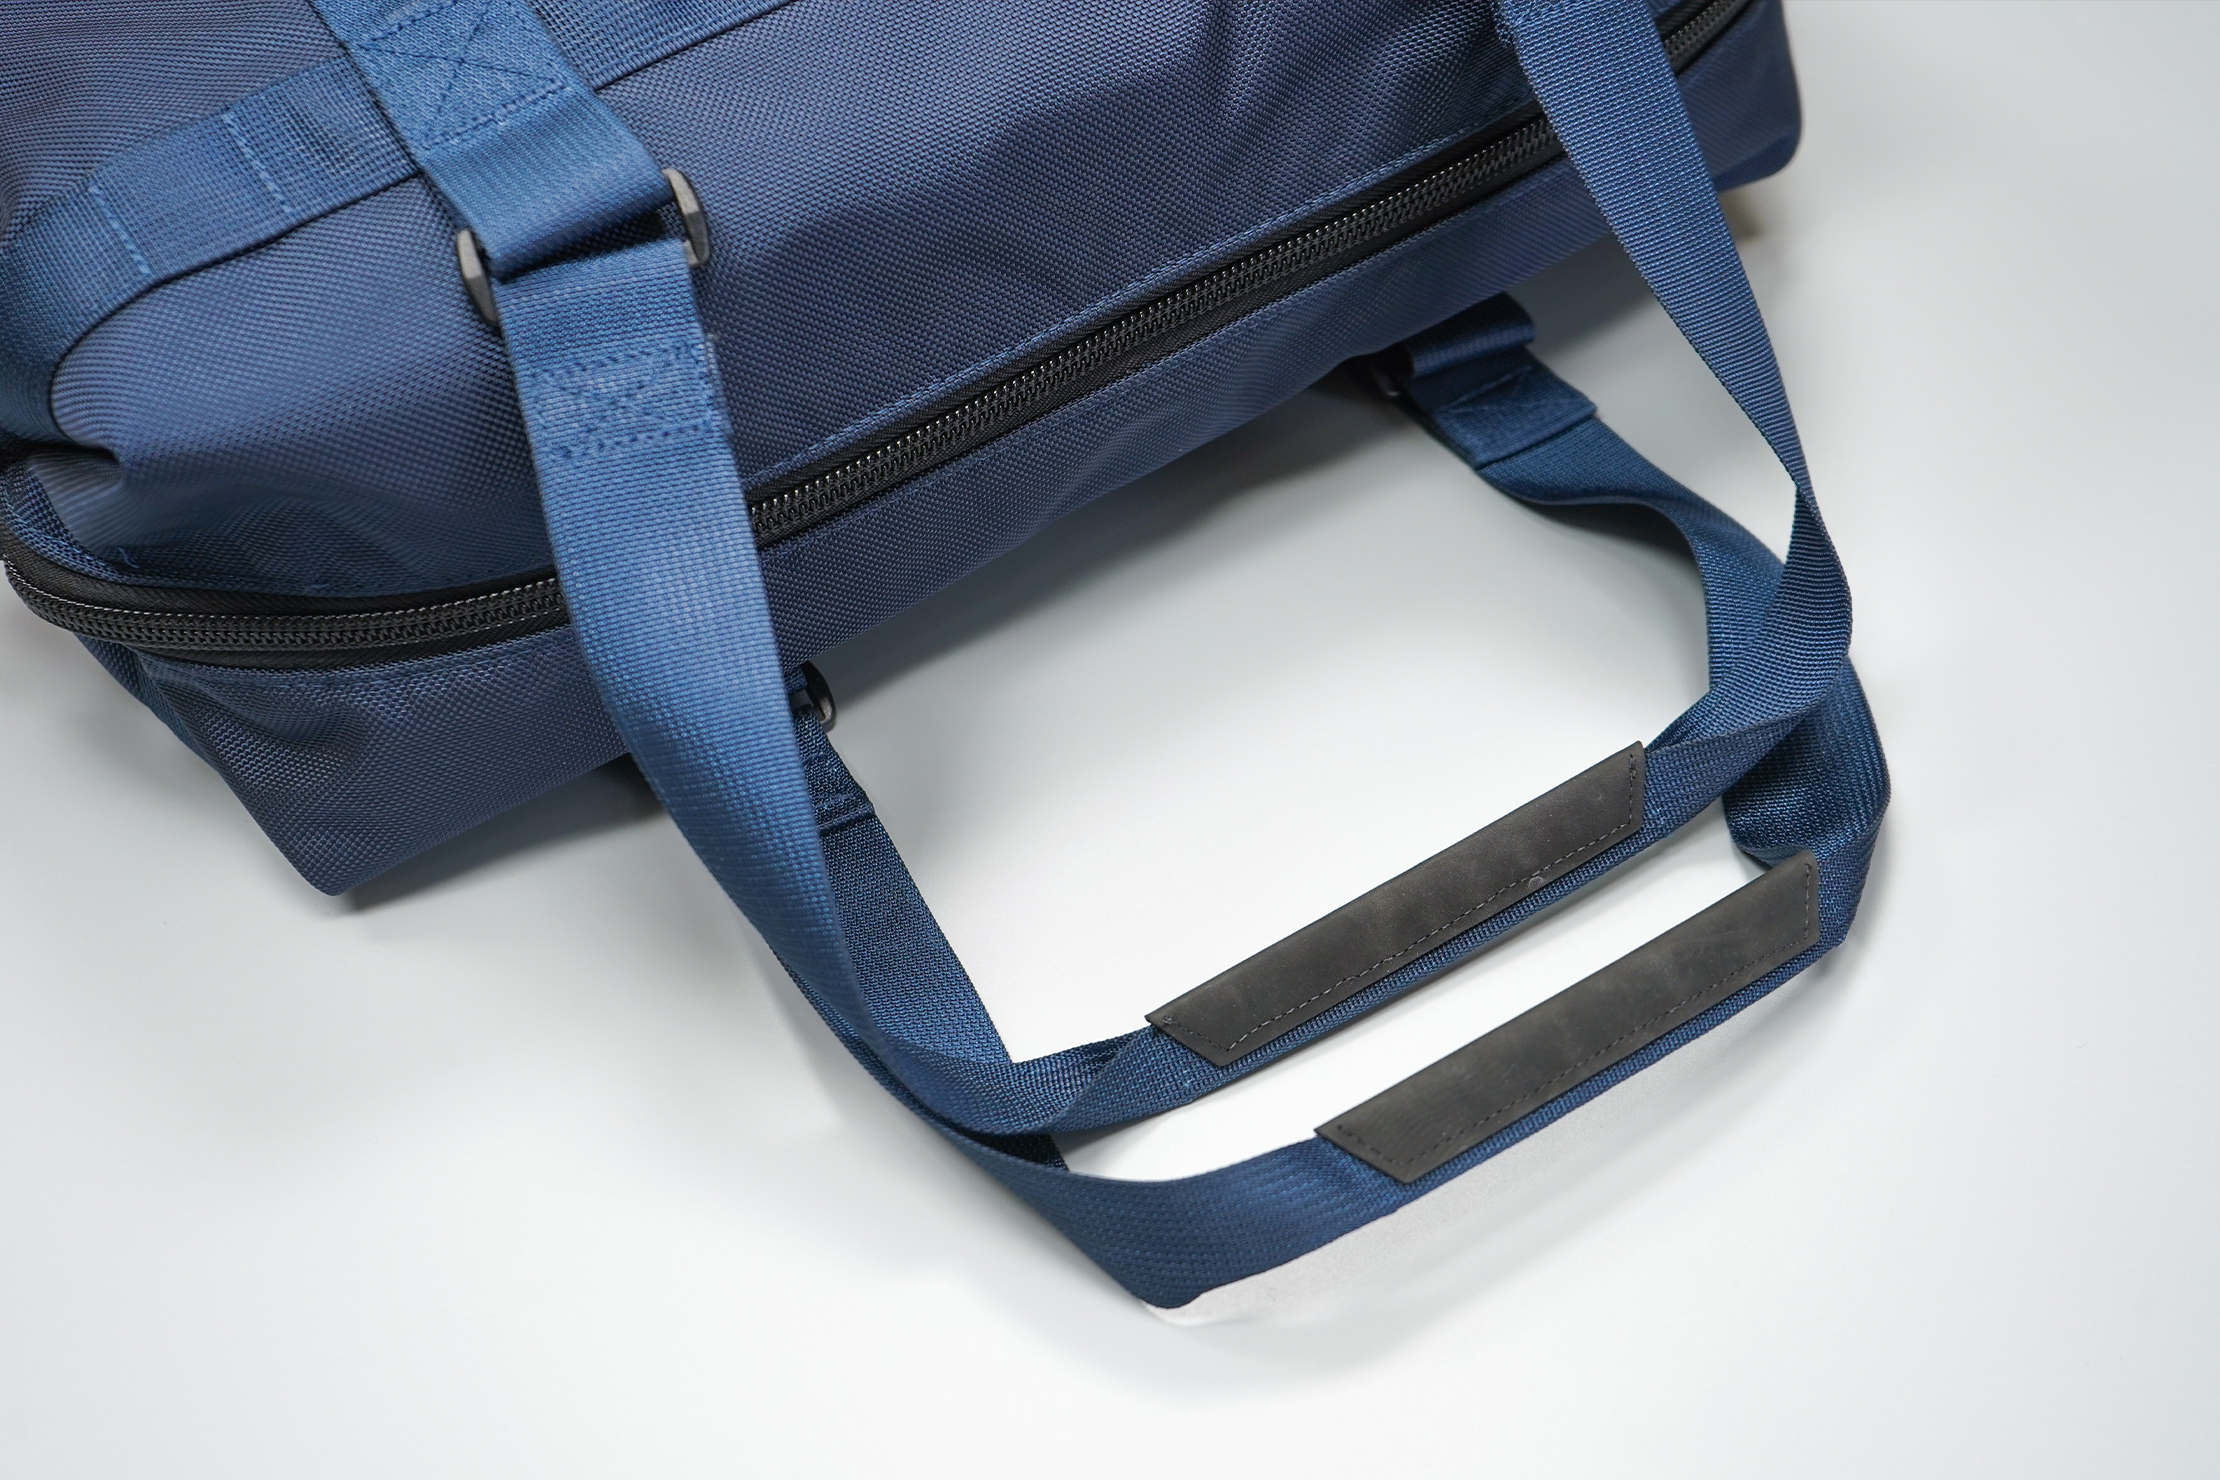 DSPTCH Utility Tote | The long handles remind us that this is a tote bag first and foremost